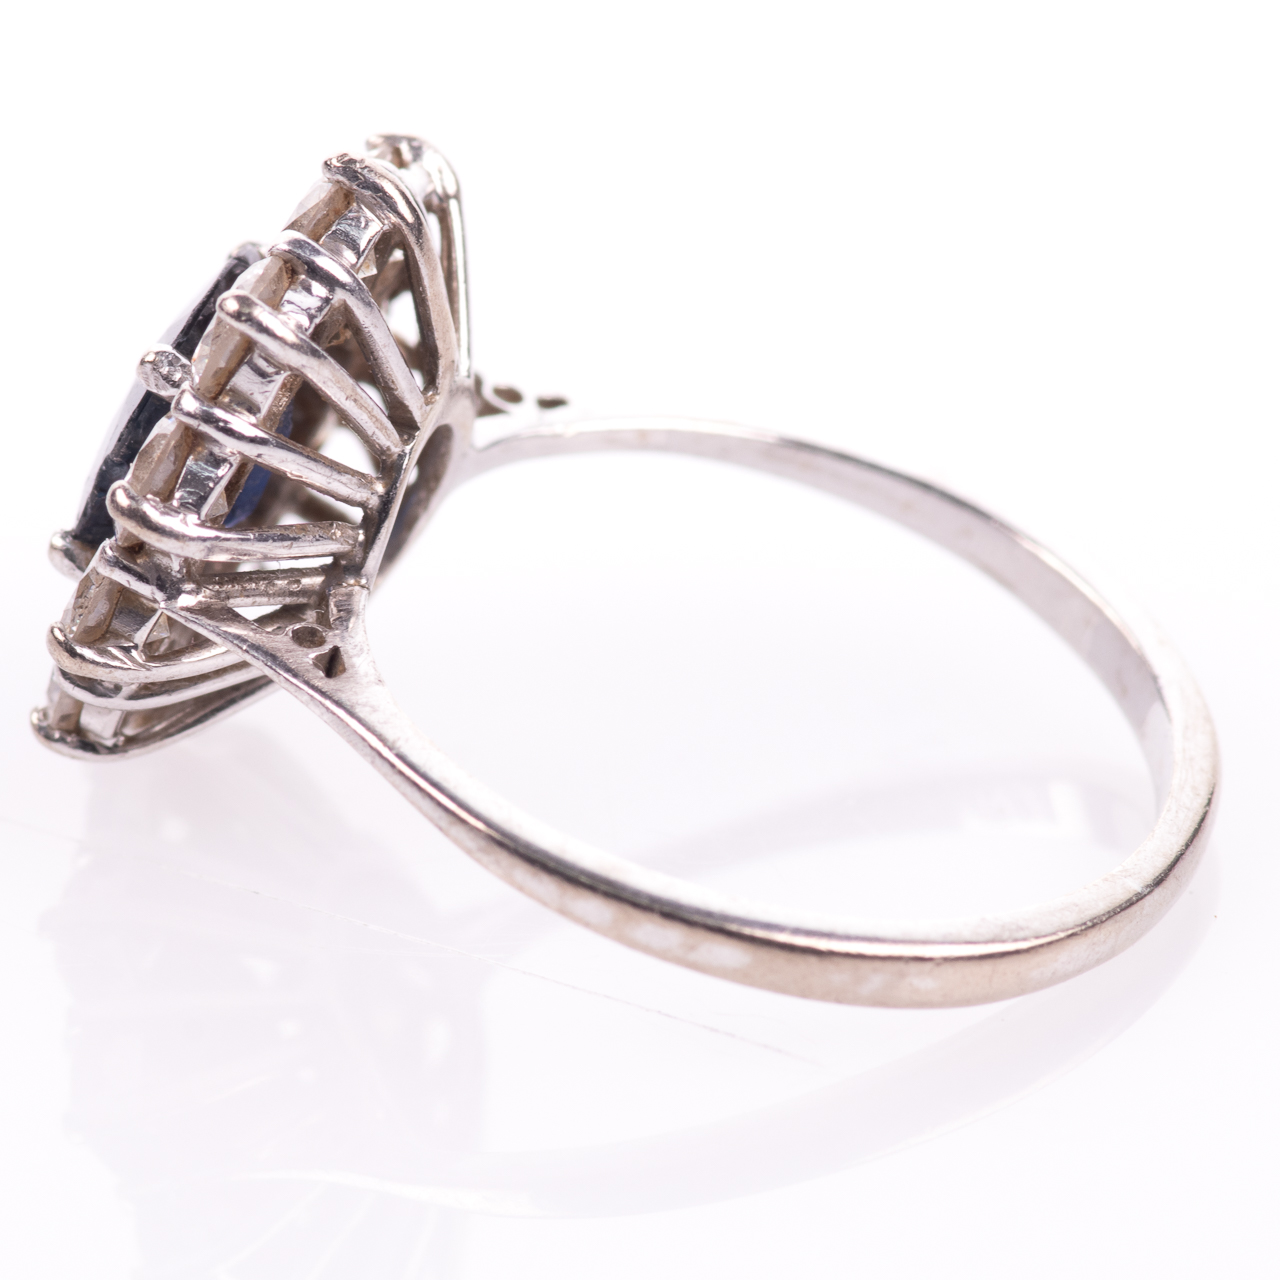 18ct White Gold 1ct Sapphire & 1ct Diamond Cluster Ring - Image 4 of 7